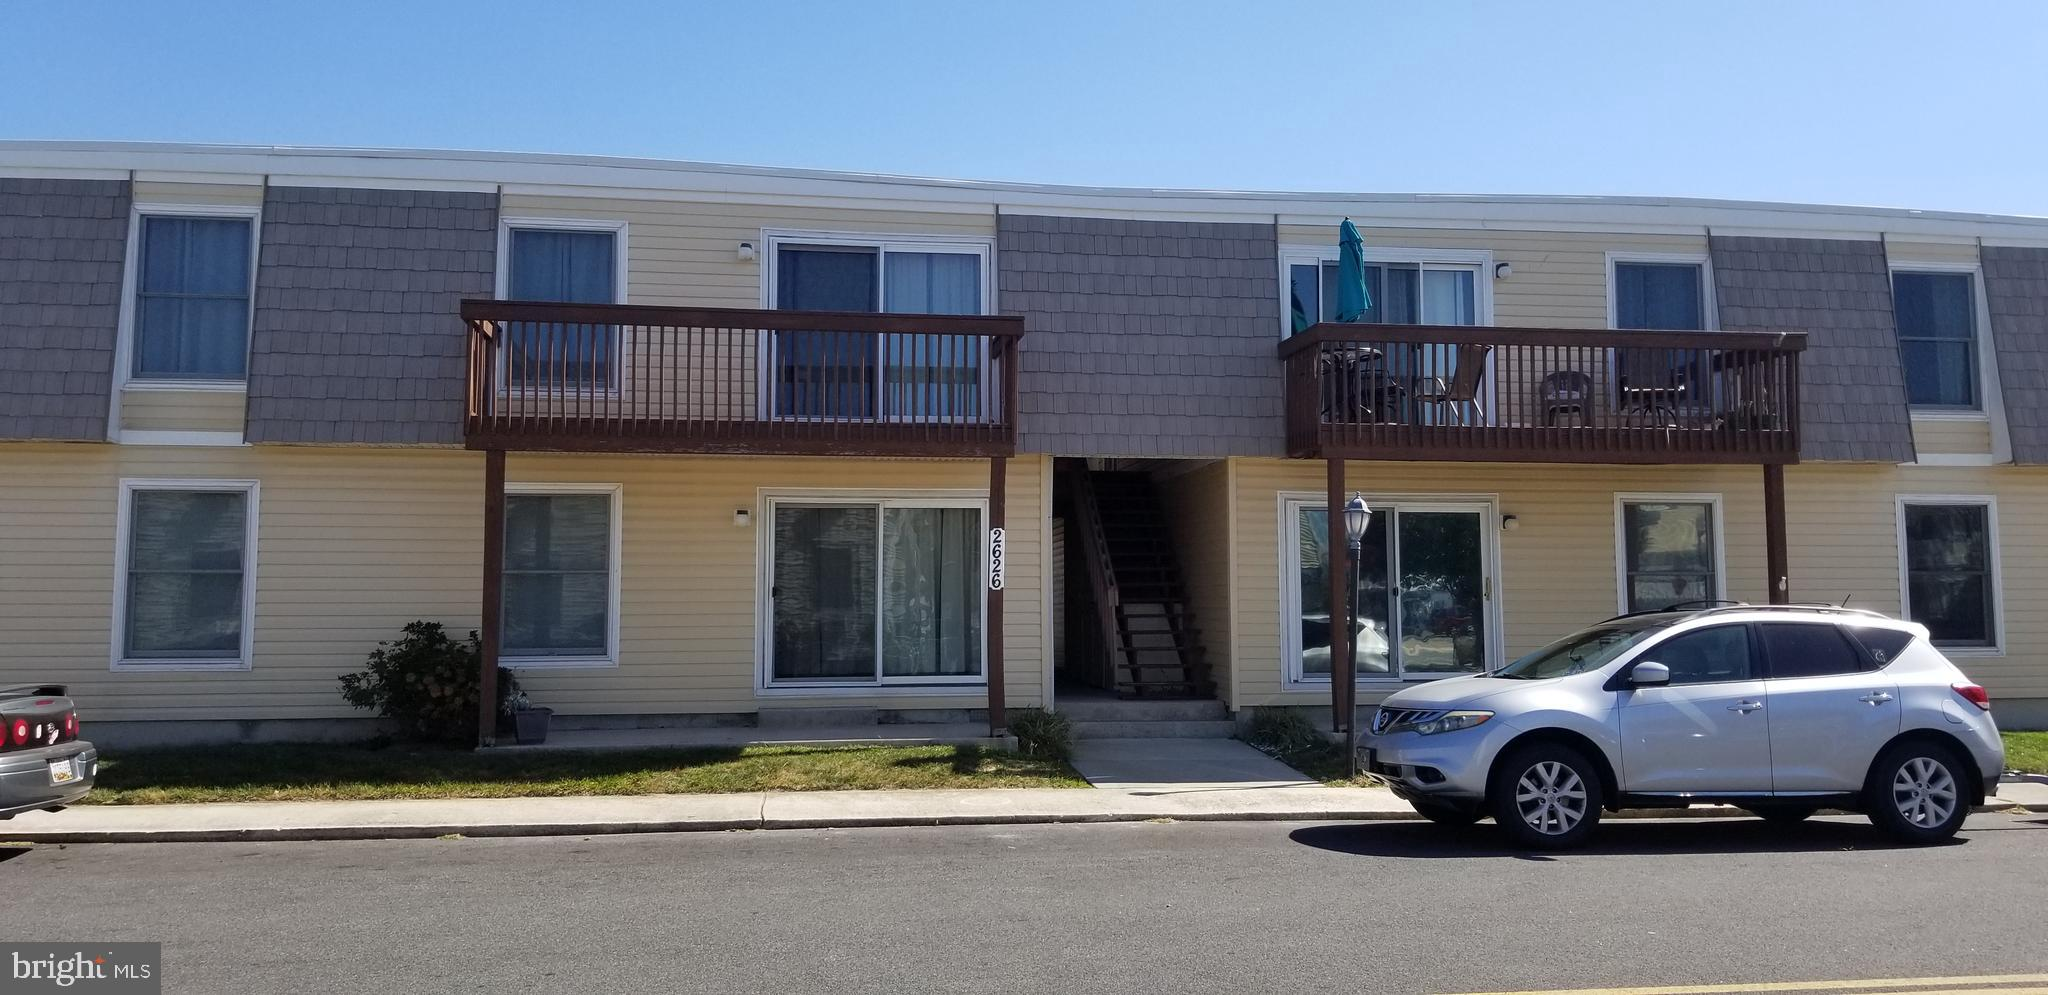 "Lovingly maintained and never rented, one owner for 21 years. A two-bedroom top floor condo in the heart of Ocean City! Convenient walk to the beach, boardwalk, and amusements. Move-in ready with new kitchen counters, backsplash, and flooring. New Deck with 2x4s and stain. Interior Painted in 2019. Floors replaced in 2017. all seams caulked. New tile in 2017 in bathroom and ""super flush"" commode installed. Fully furnished. Strong association with the resident manager on-site, outdoor pool, plus owner storage unit in the bldg. Great income potential. Don't miss this opportunity! This is a bang for the buck! This affordable well cared for 2 bedrooms 1 bath won't last. Many owners have added a half bath and washer/dryer for well under $7,000.00. Good rental potential for investment interest. NO washer dryer in this unit"